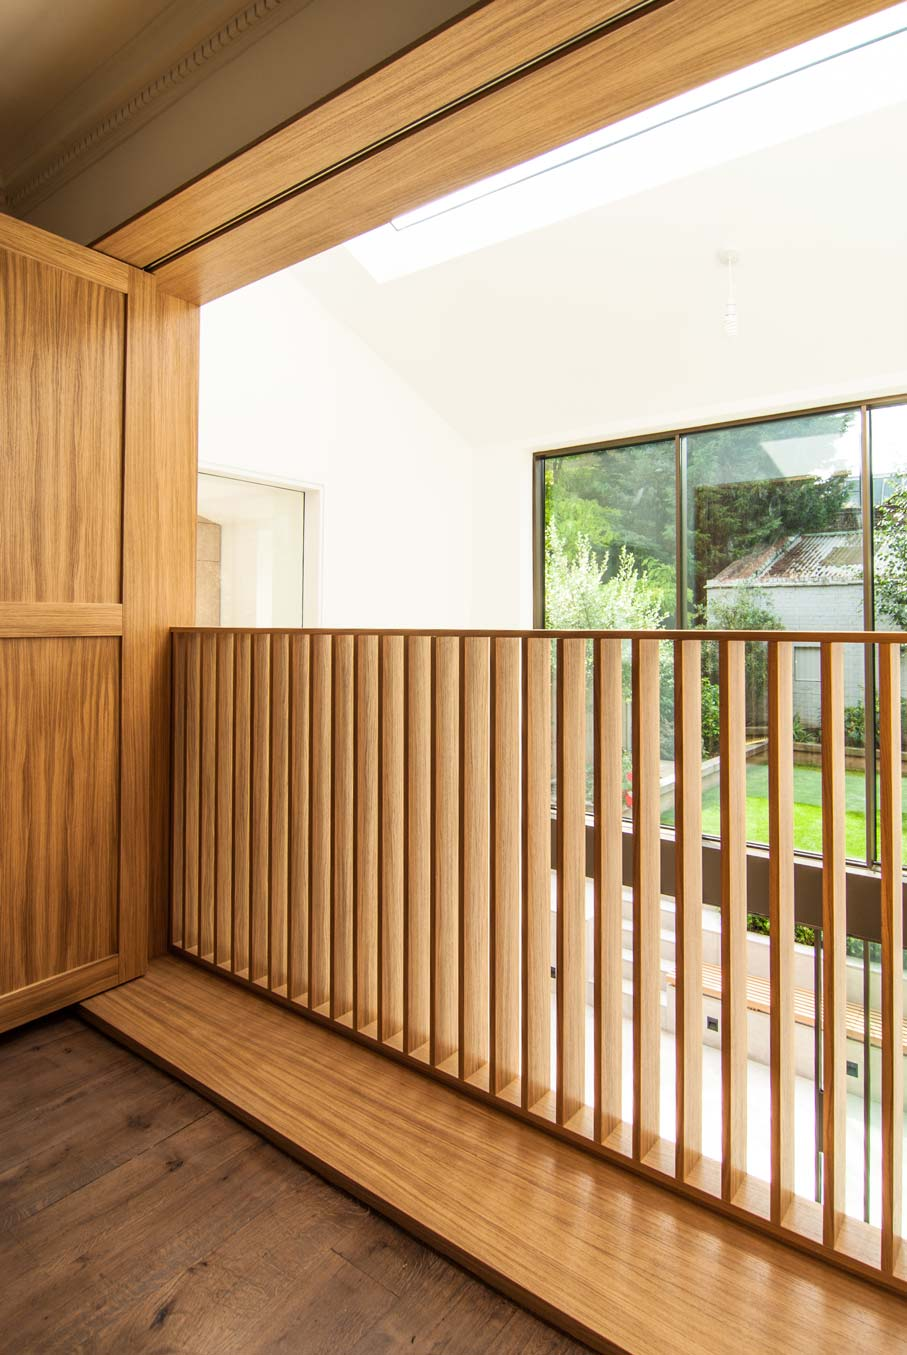 Close up of the Oak shutters balustrade and view onto the extension and sunken courtyard.